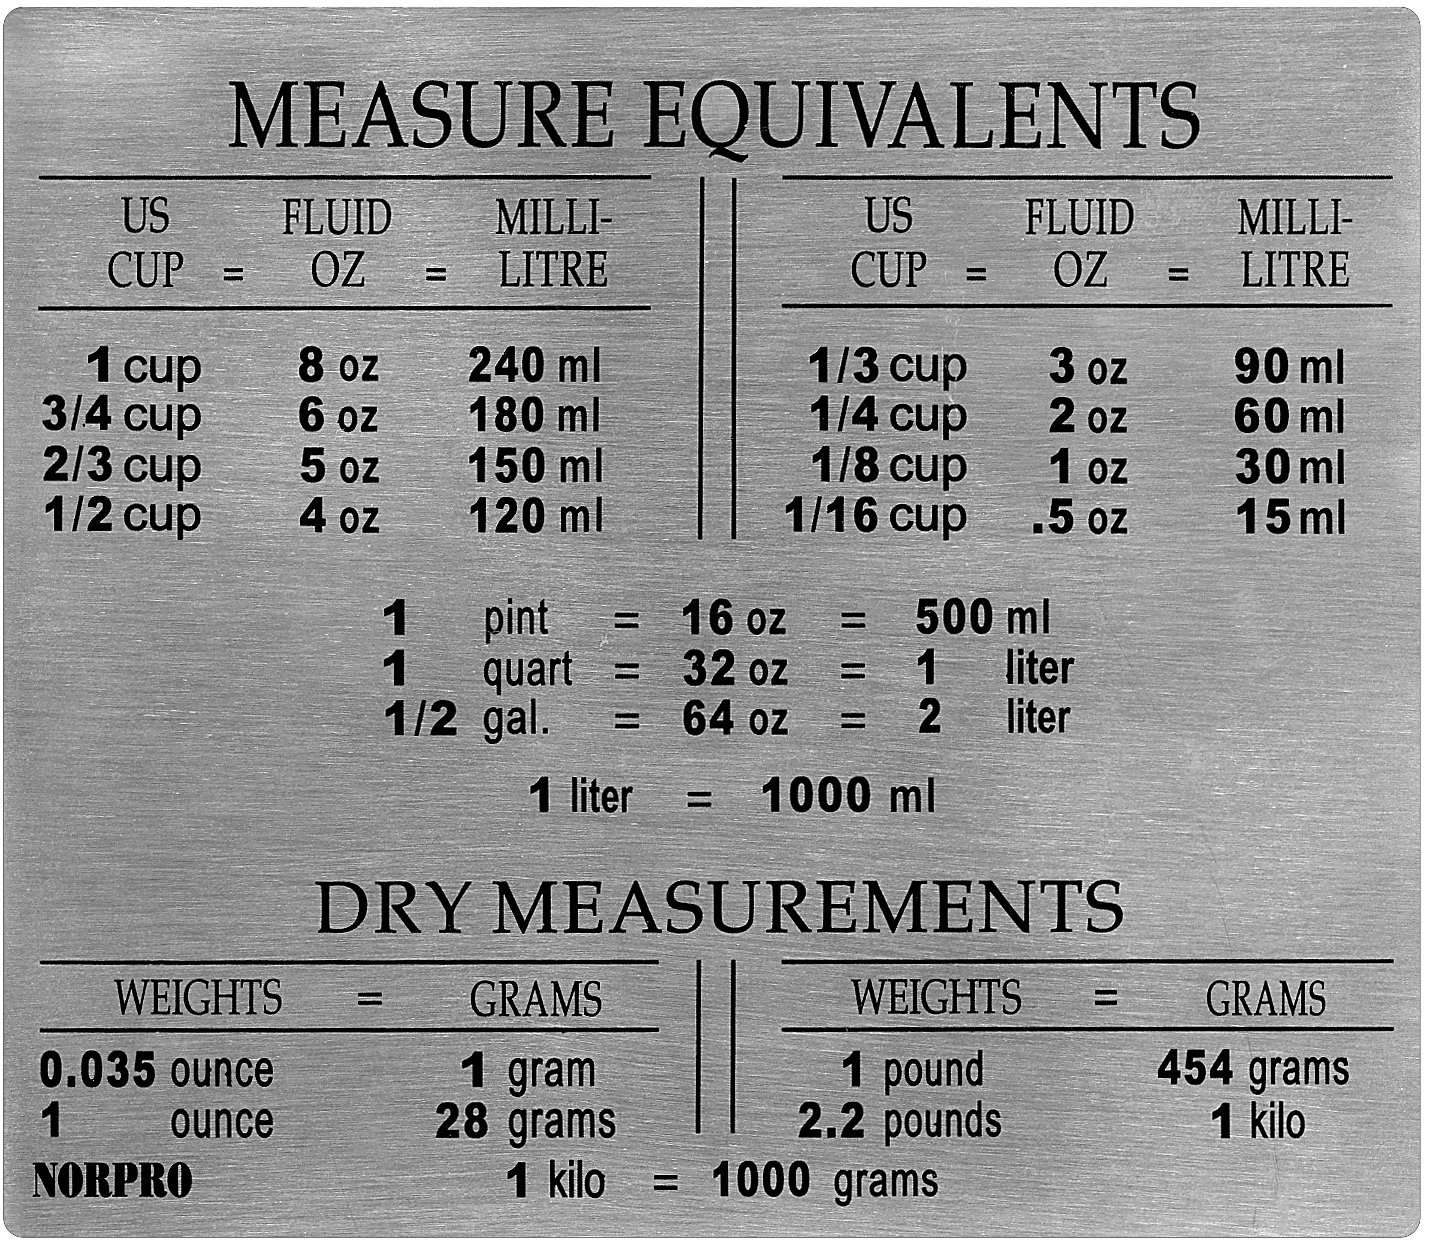 Norpro 1810 stainless steel kitchen measure conversion chart norpro 1810 stainless steel kitchen measure conversion chart magnet new amazon kitchen home nvjuhfo Choice Image